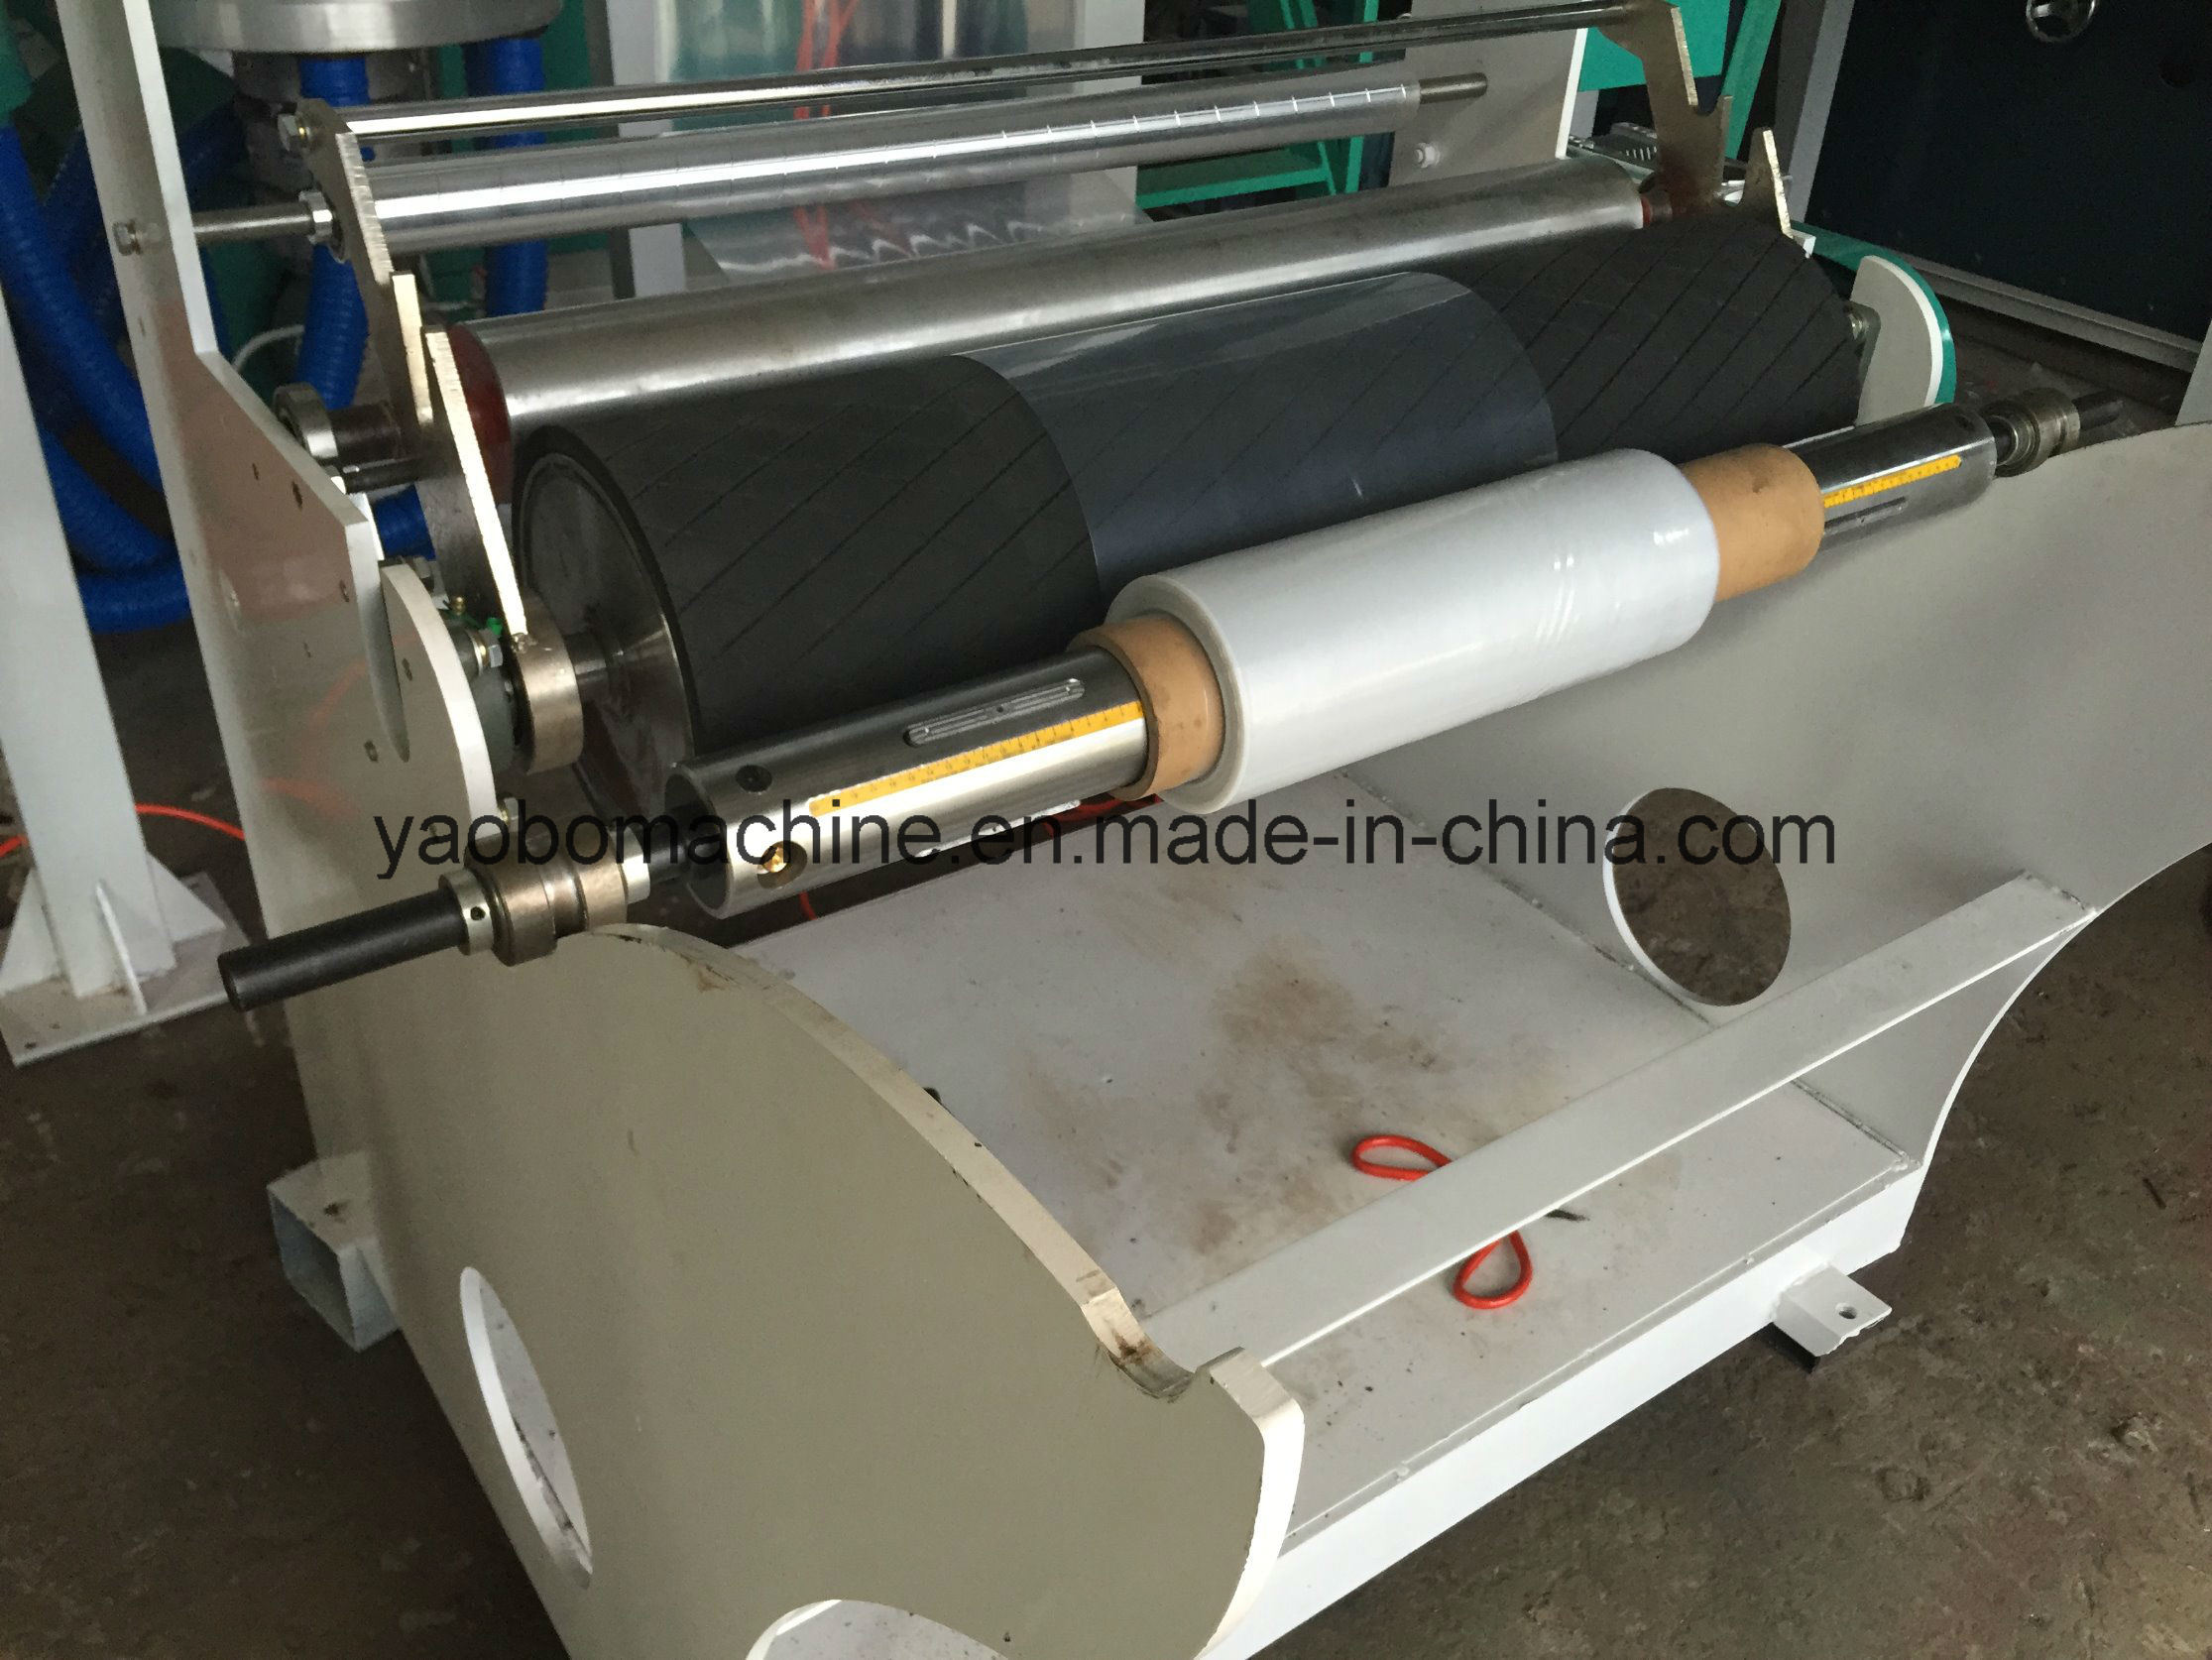 Sj-A65 1200mm PE Blown Film Extruder Made in China